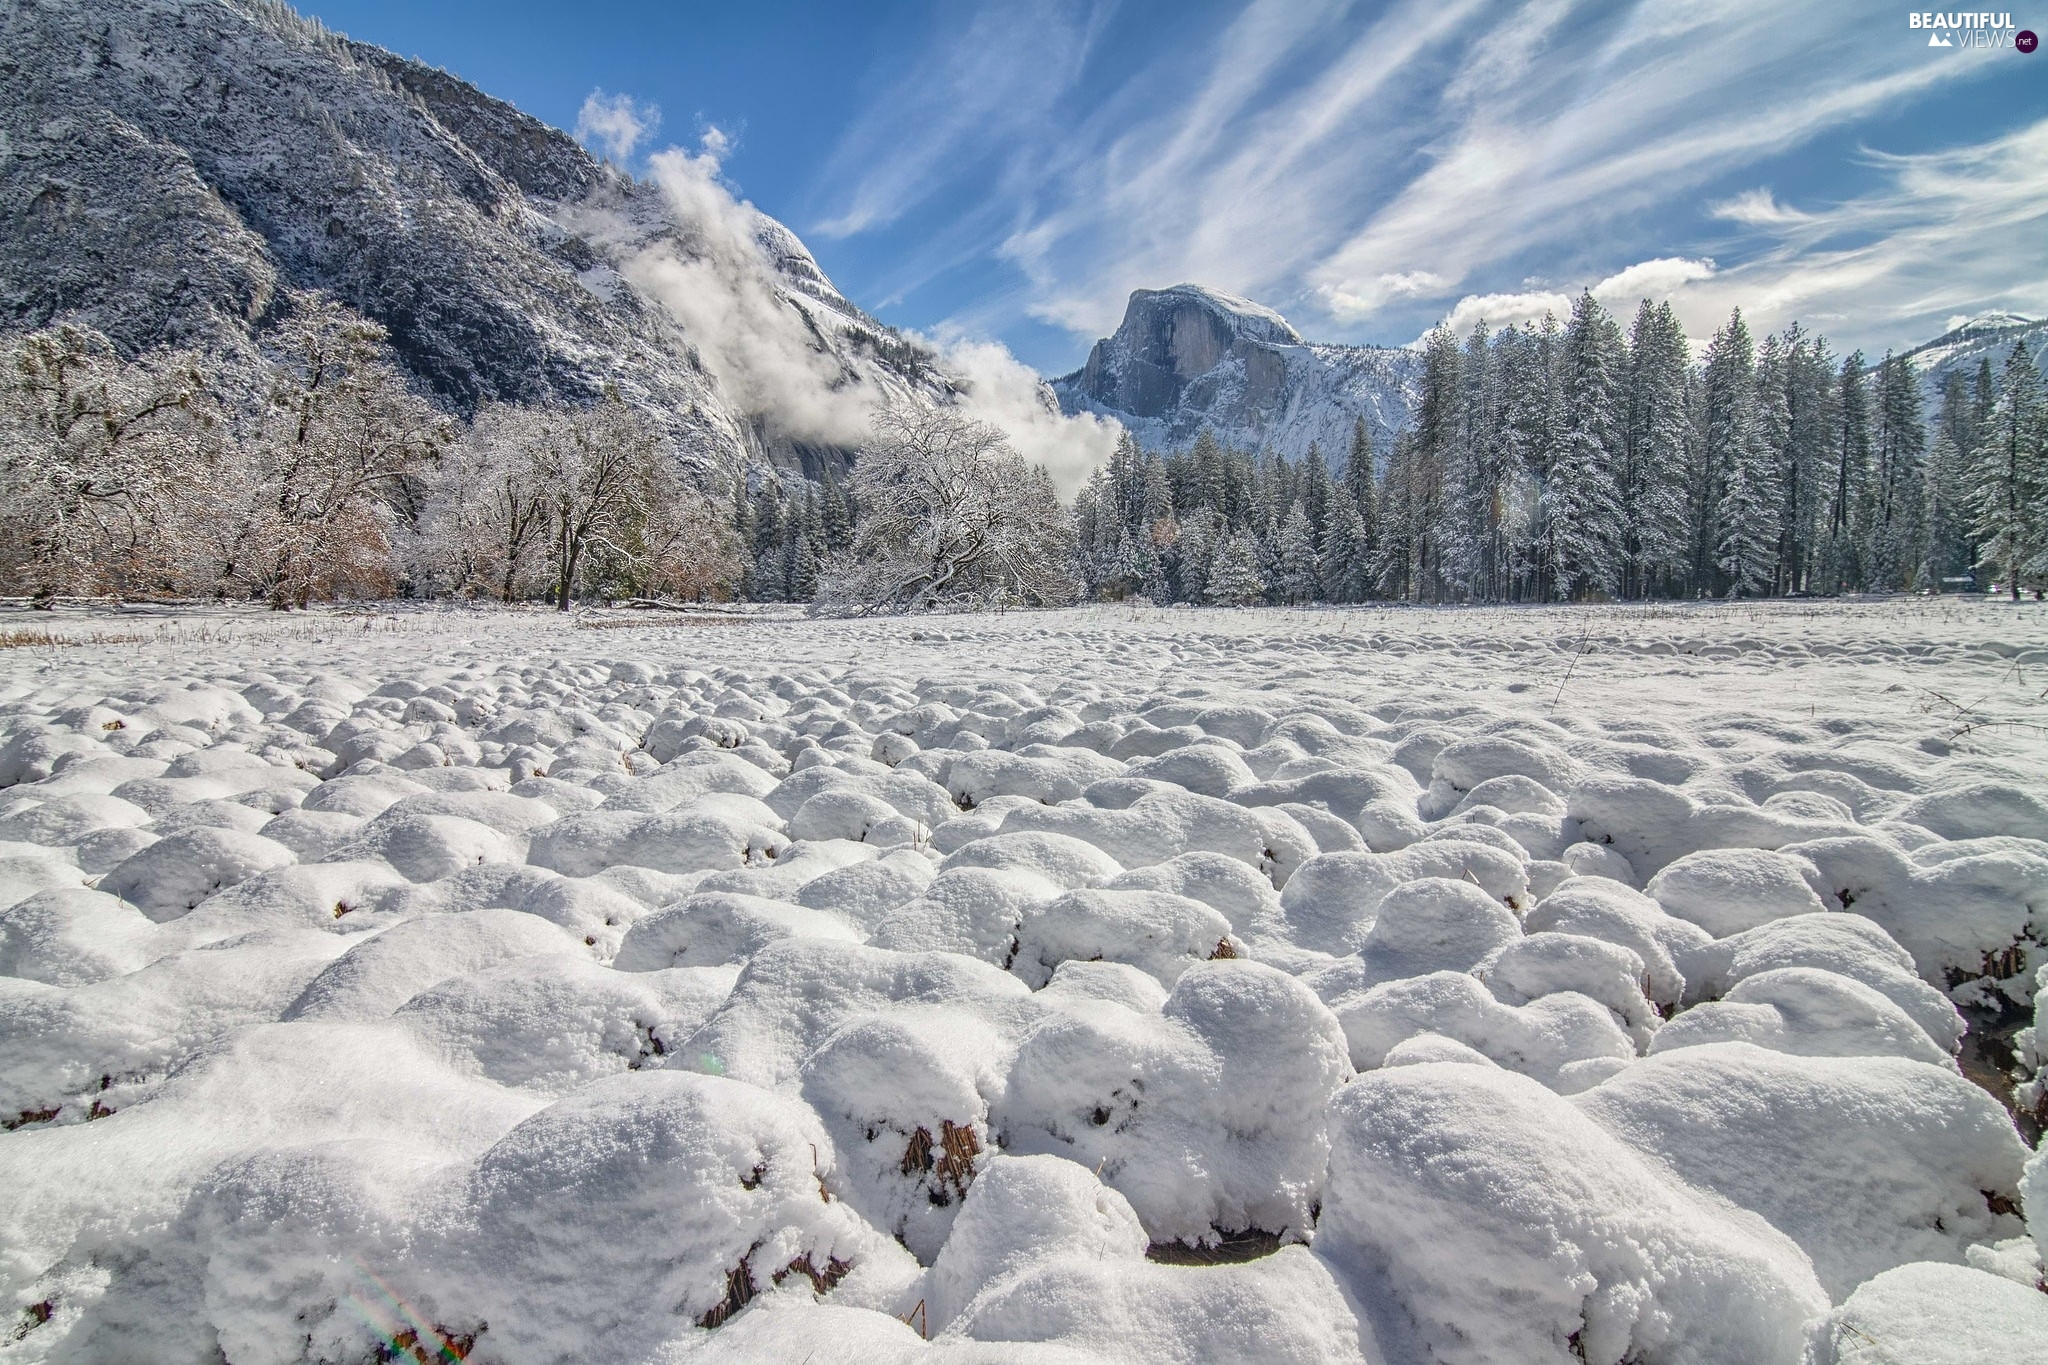 The United States, Mountains, Yosemite National Park, State of California, winter